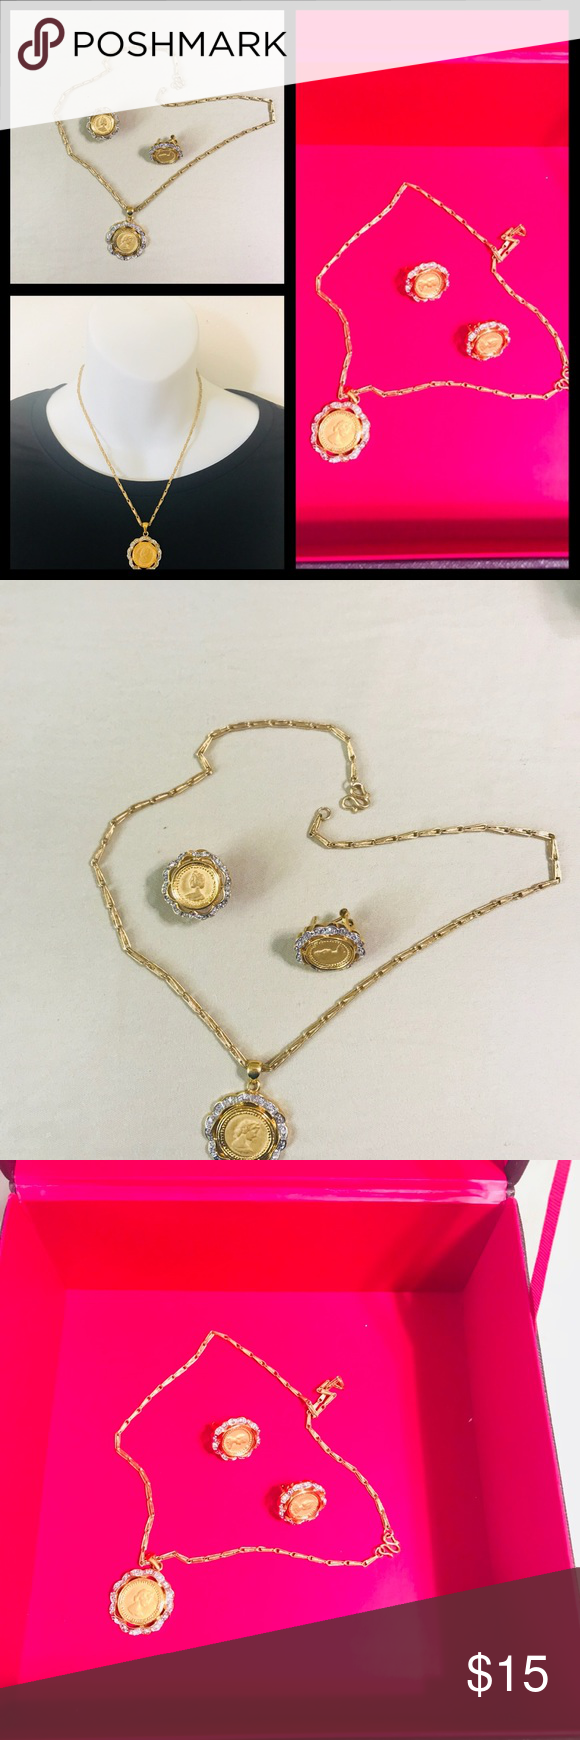 31++ Sell my gold plated jewelry viral